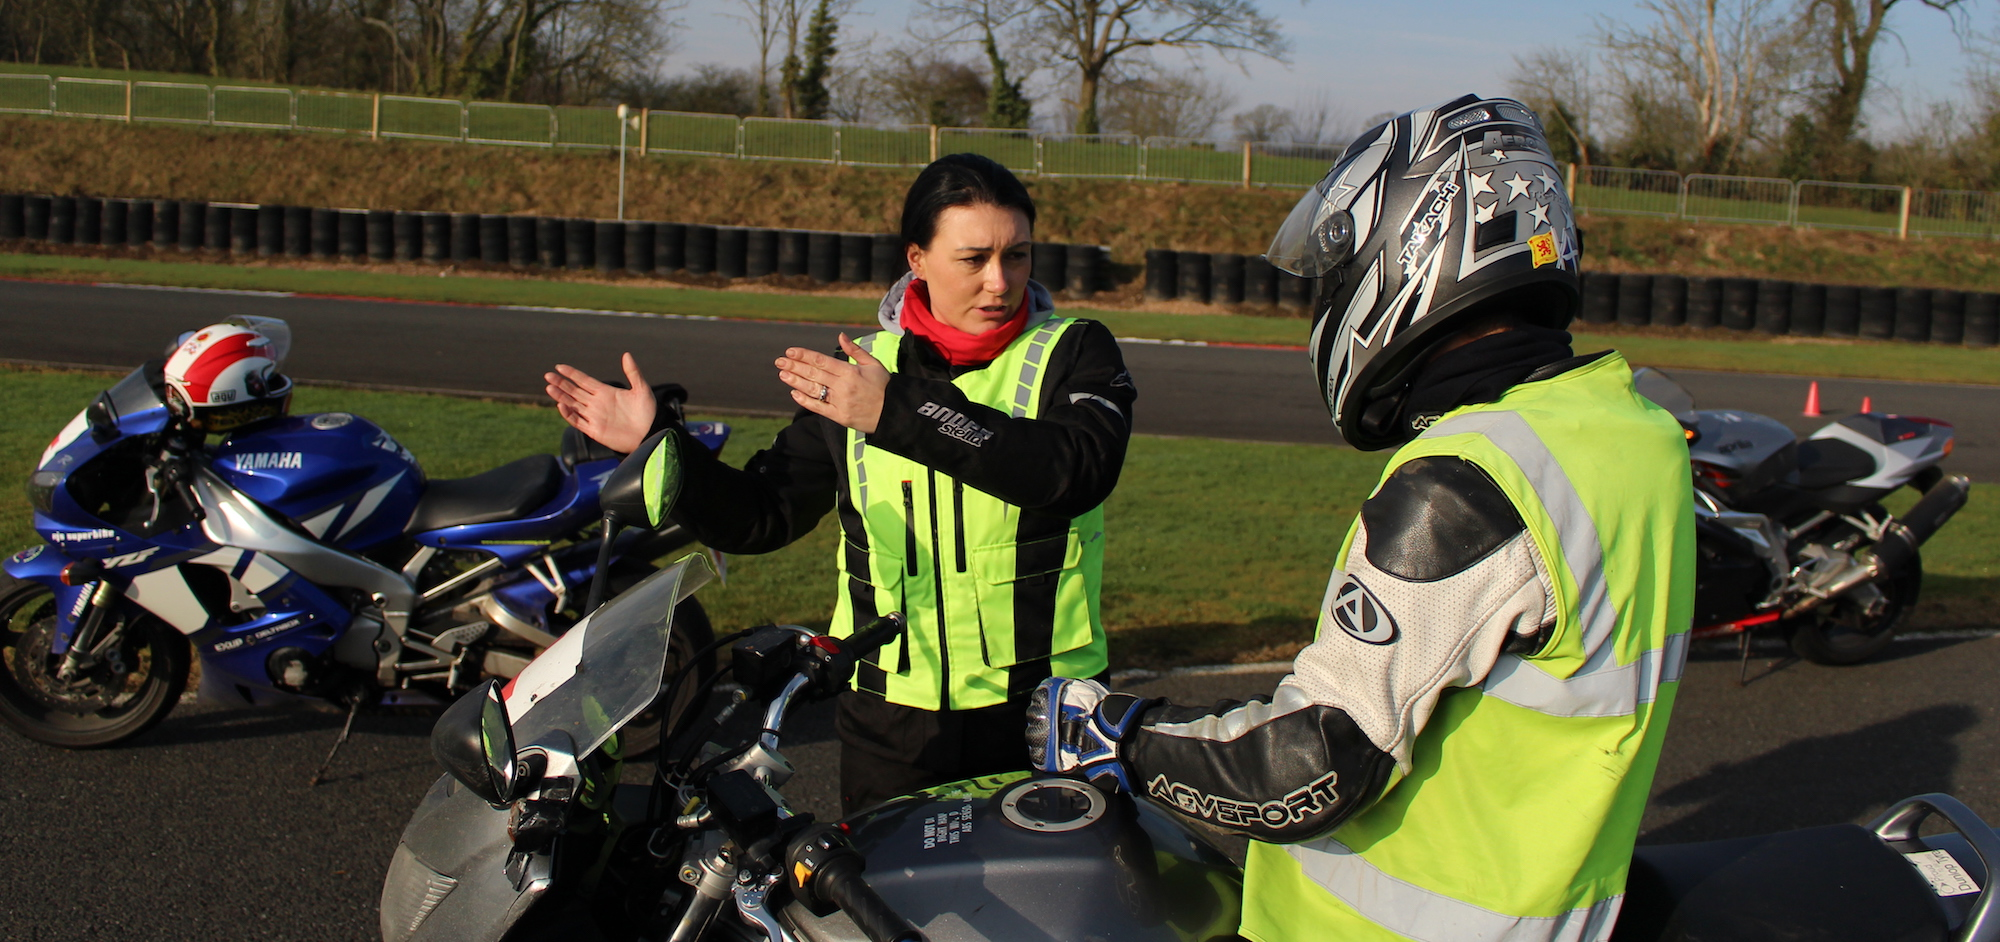 Motorcycle test CBT, Direct Access Leicester,Nuneaton, Coventry, Hinckley, Derby, Nottingham, Birmingham, Stroud, Lincoln, St Neots, Camberley, Epsom, Kensington, Chelsea, Dagenham, Canvey Island, Chichester, Cirencester, Bristol, Bath, Cheltenham, Kettering, Kidderminster, Stevenage, St Albans, Cardiff, Leeds, Manchester, Warwick, Chester, Glasgow